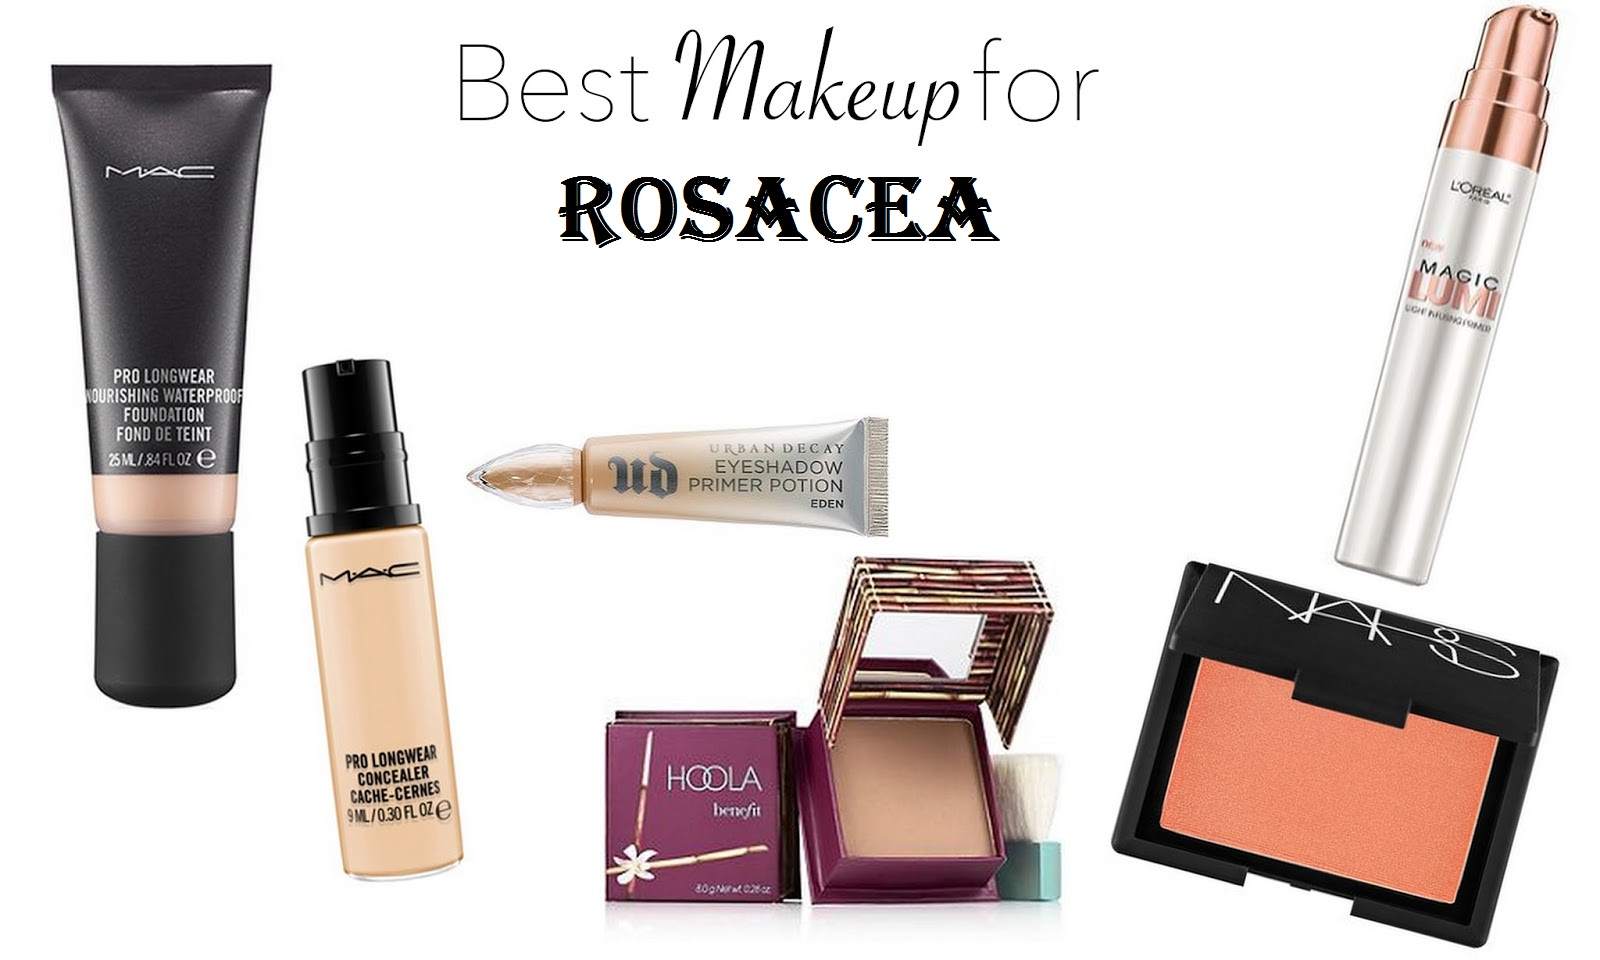 Best Makeup for Rosacea in 2017 (Top 10)